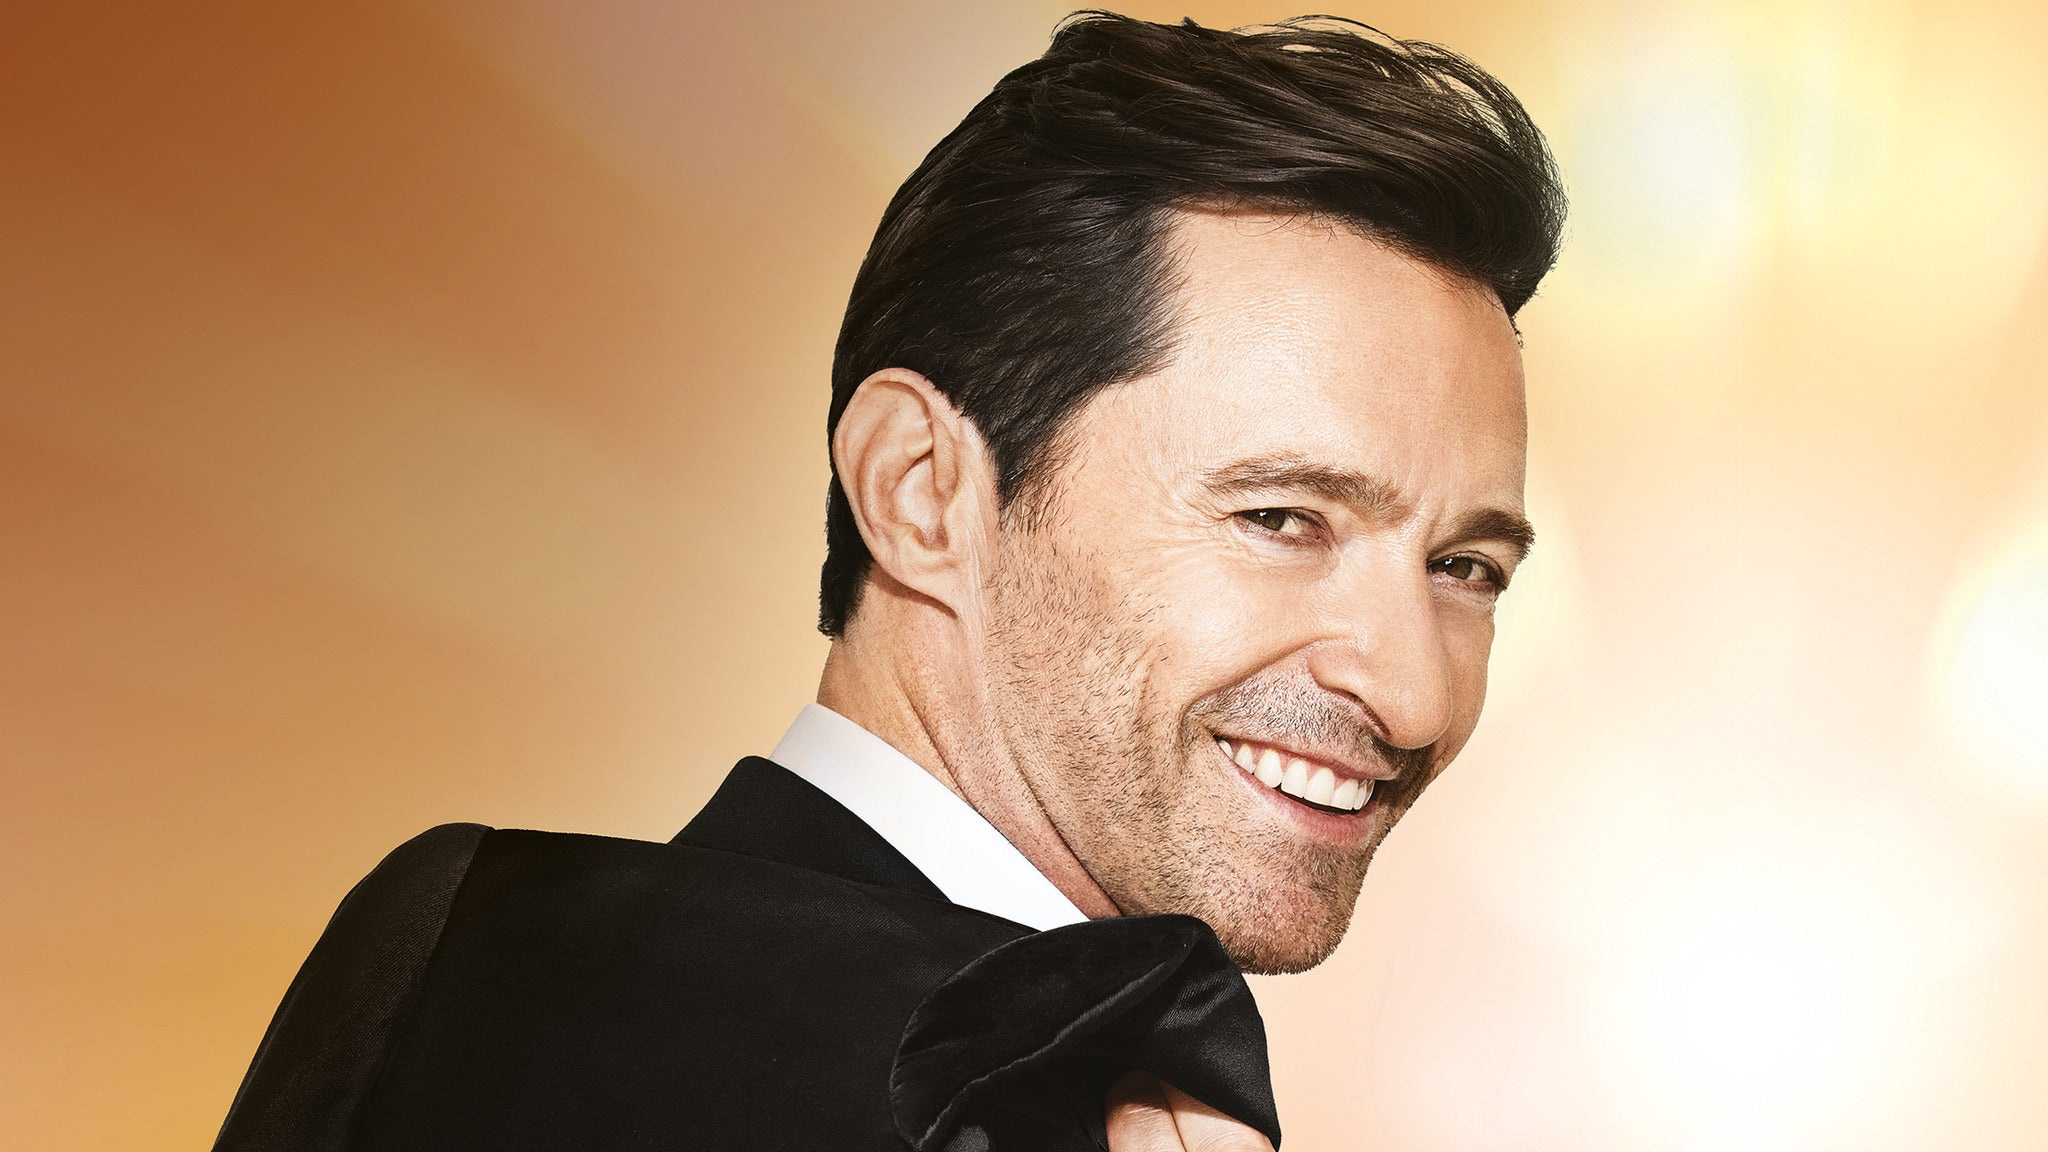 Hugh Jackman: The Man. The Music. The Show. at Amalie Arena